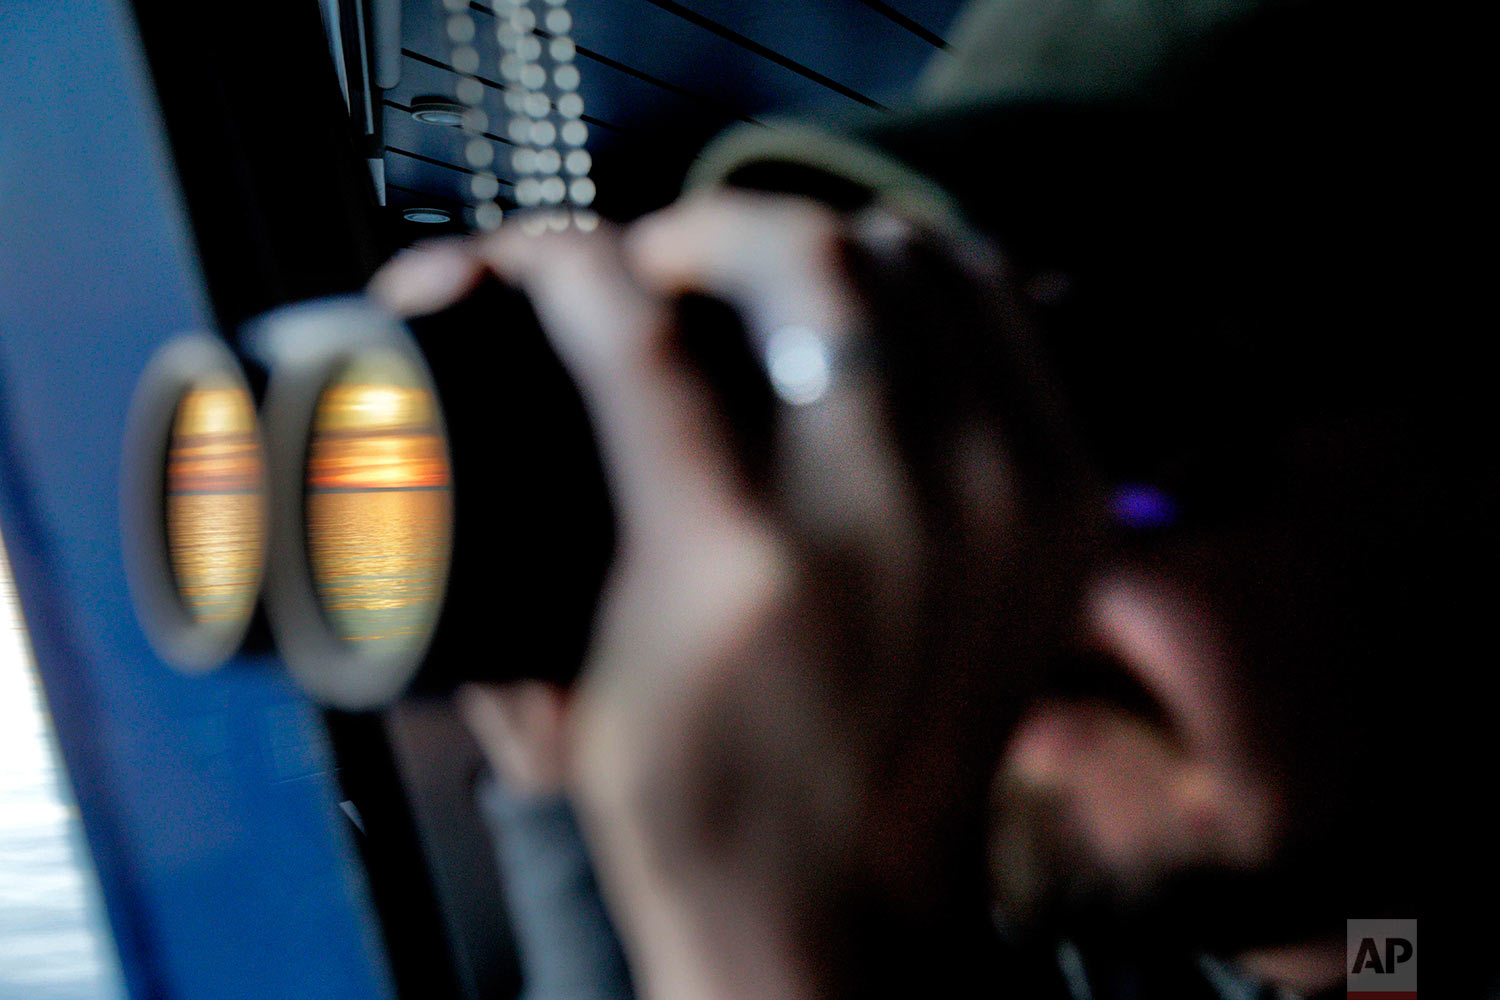 Researcher Ari Laakso looks to the horizon through binoculars under the midnight sun while approaching the Bering Strait, which divides the United States and Russia, as the Finnish icebreaker MSV Nordica sails along the international date line, Friday, July 14, 2017. The international date line is an imaginary border that runs through the middle of the Pacific Ocean and marks the boundary between calendar dates, effectively making it the zero-line for the planet's time zones. (AP Photo/David Goldman)